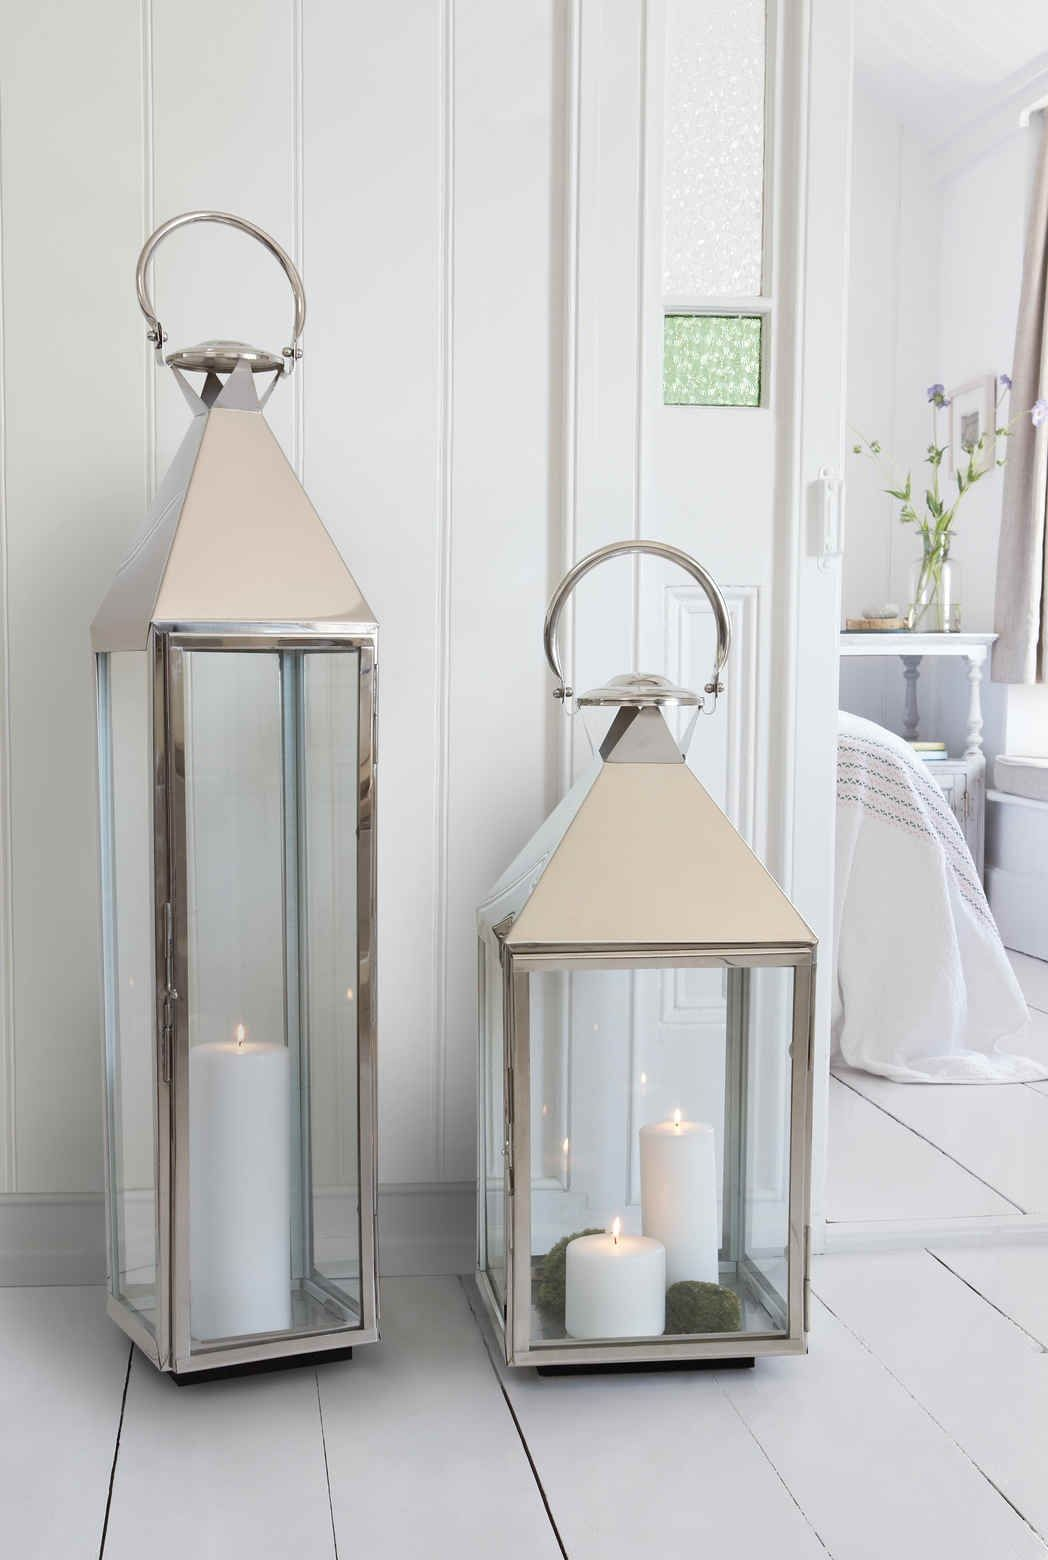 Large Decorative Floor Lanterns In 2020 Outdoor Candle Lanterns Tall Lanterns Decor Indoor Candle Lanterns